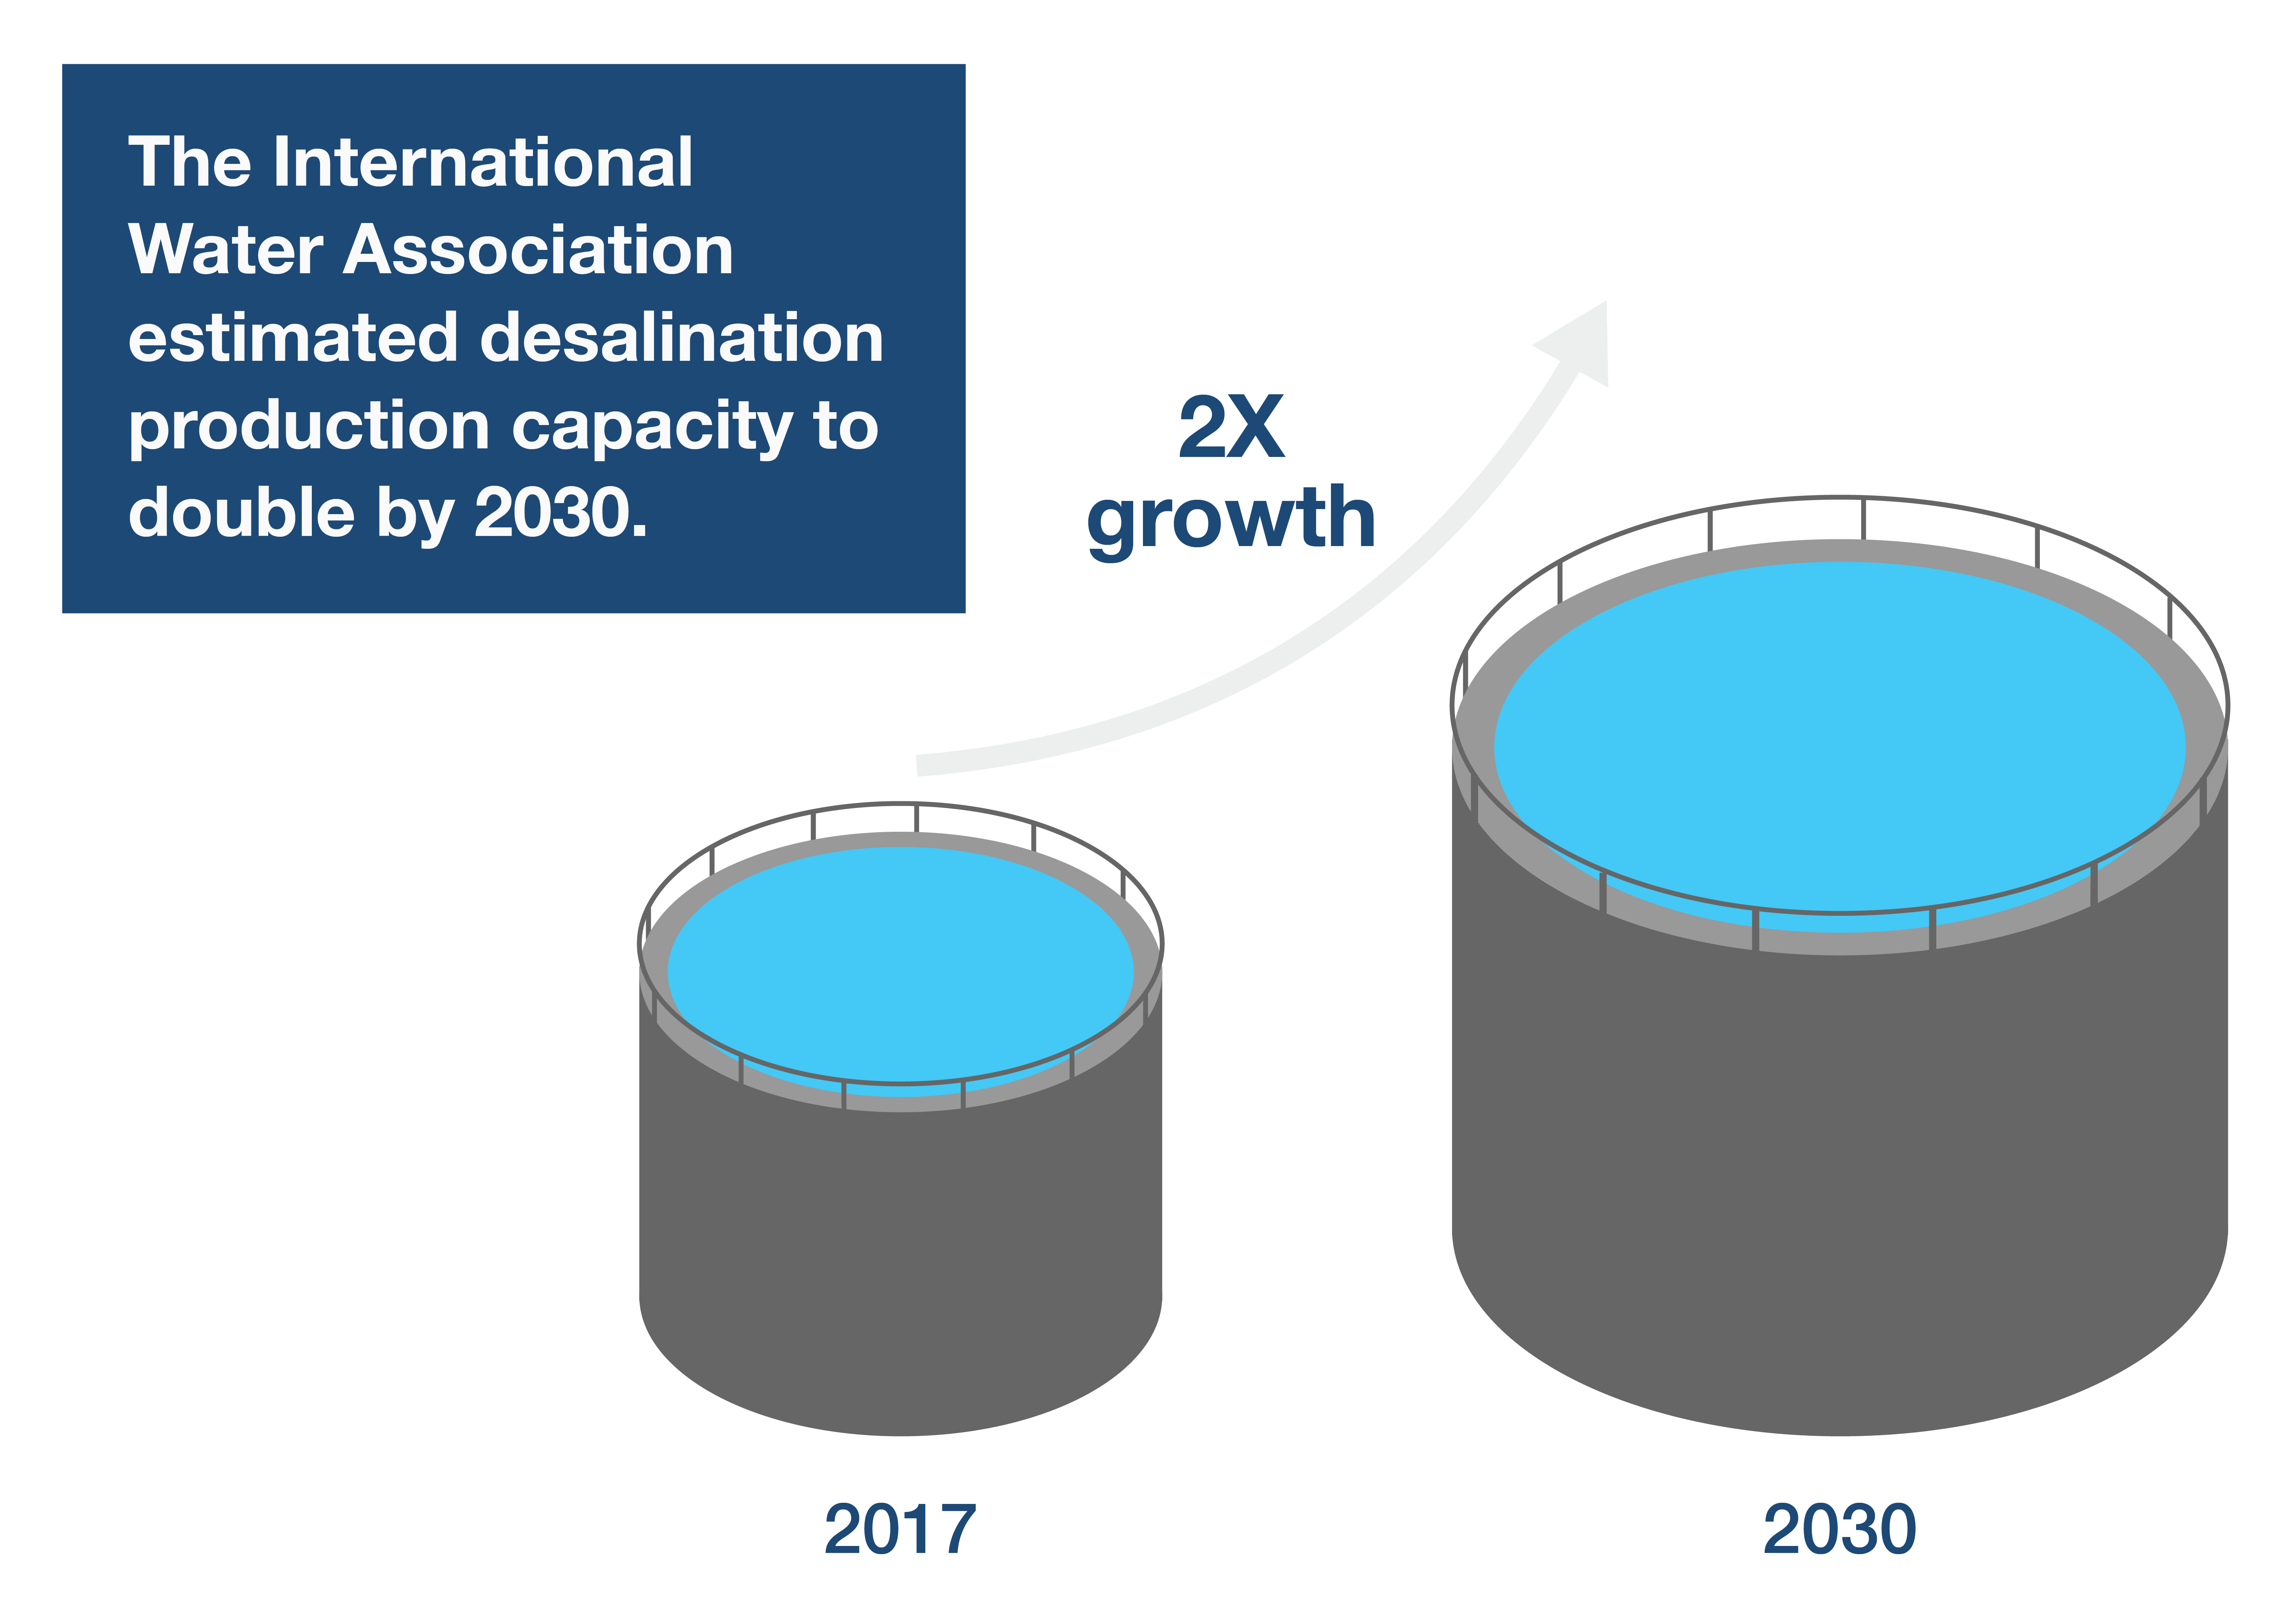 Desalination Growth